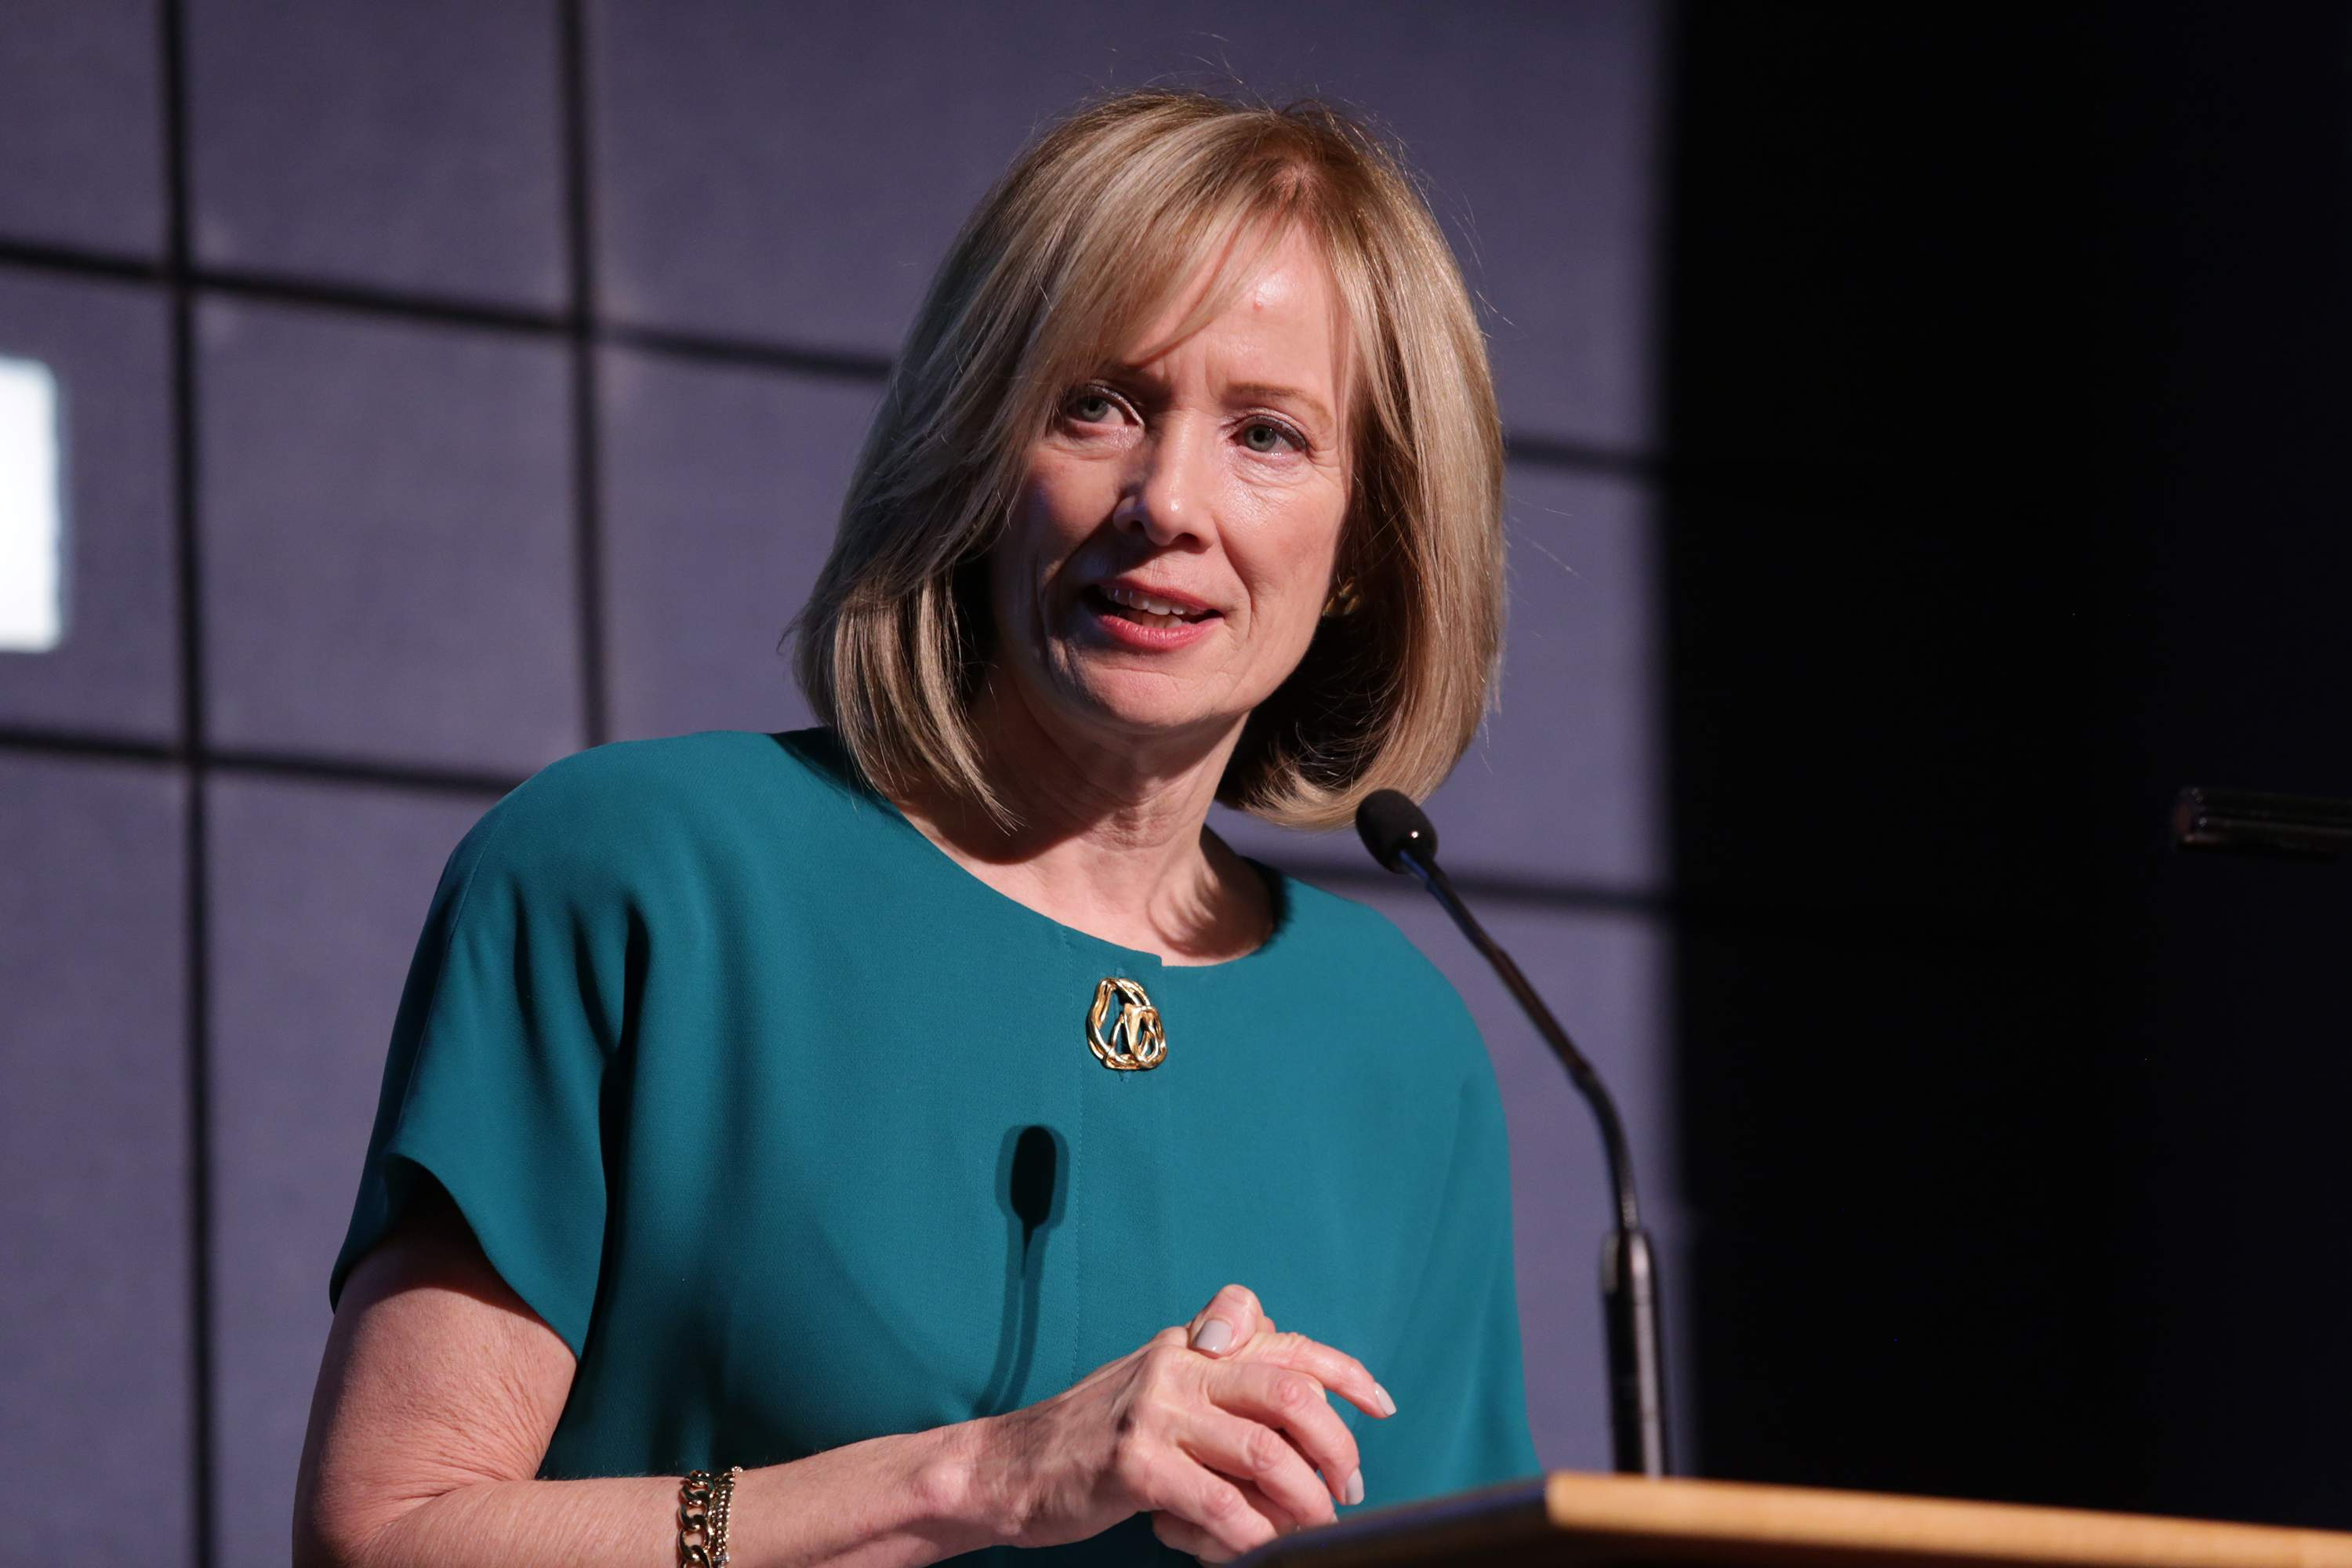 Judy Spires, chairman and CEO of Kings Food Markets, delivers inspiring remarks as she is awarded the Lifetime Achievement Award at the Best 50 Women in Business reception.